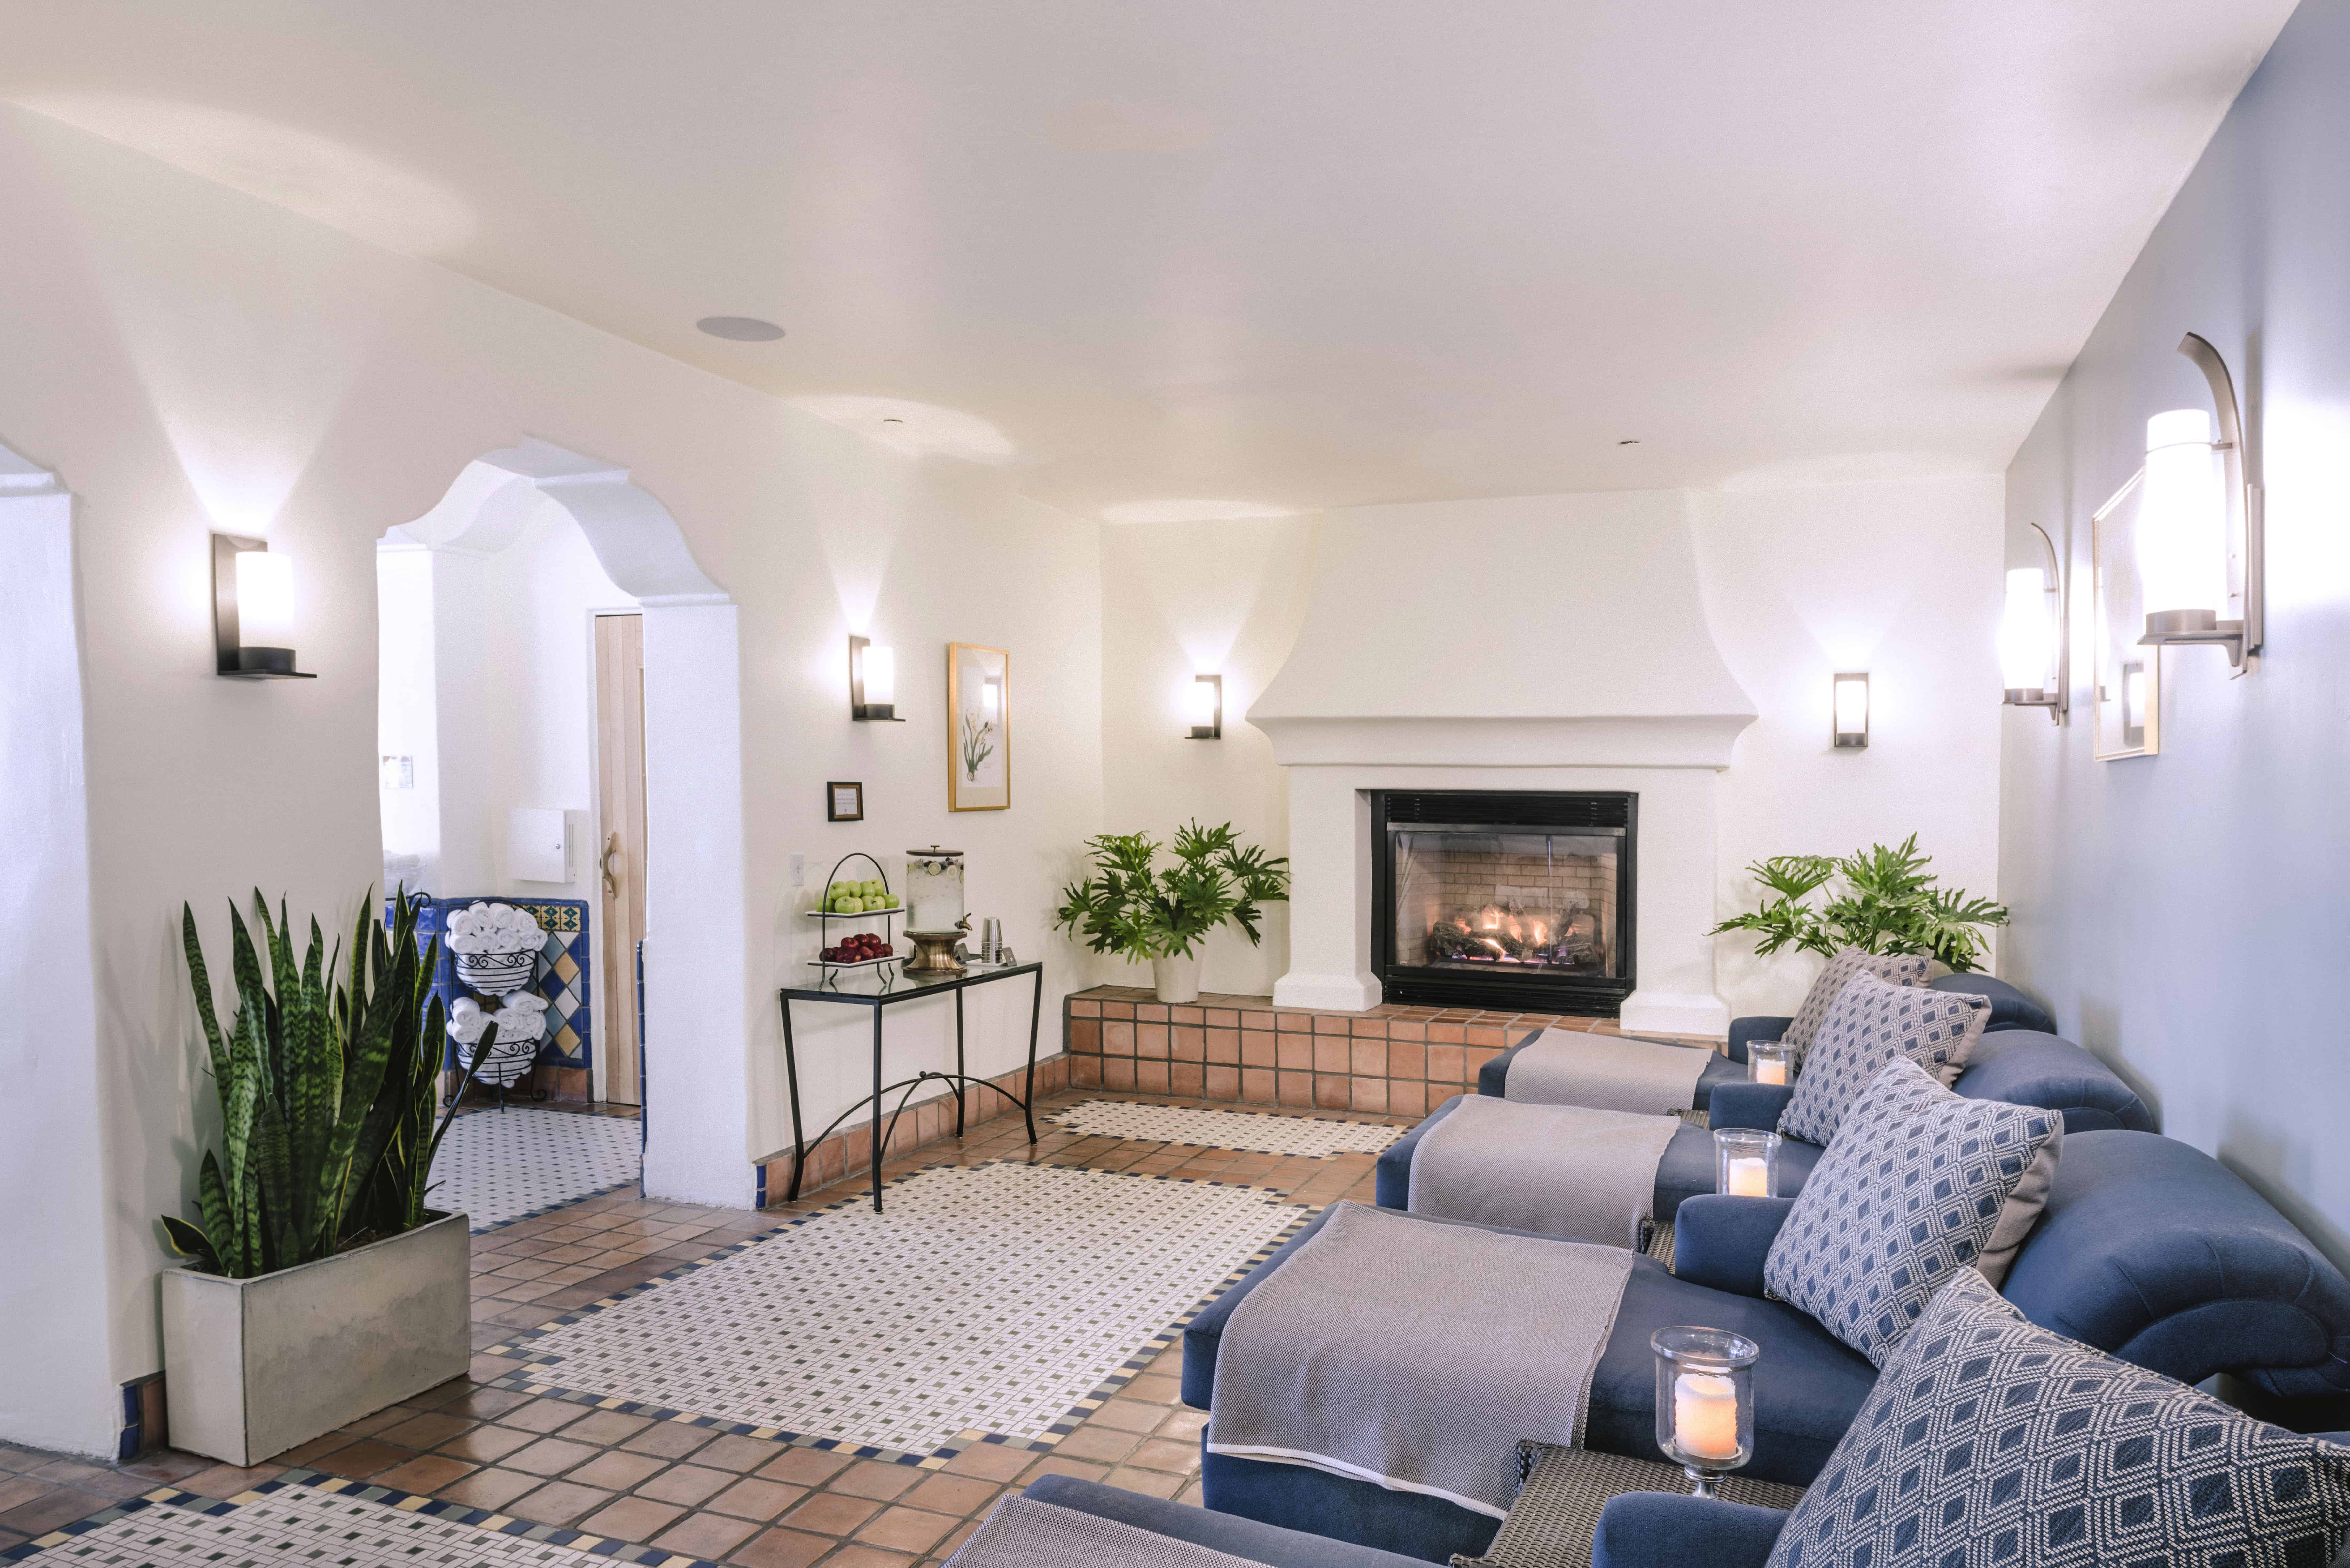 Ojai Valley Inn Spa Lounge Area With Fireplace